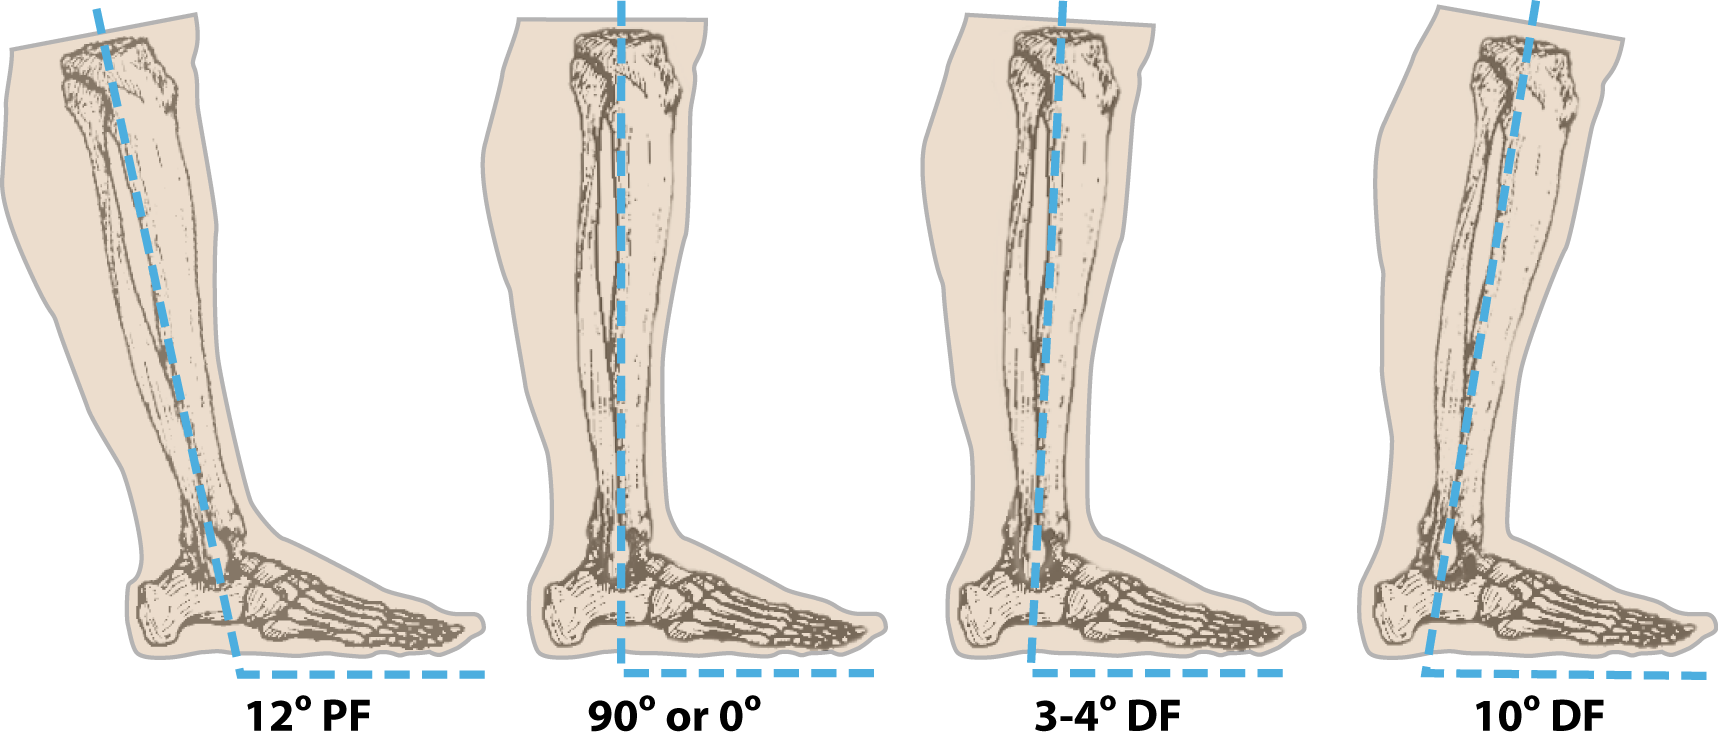 ankle-alignment-pf-df